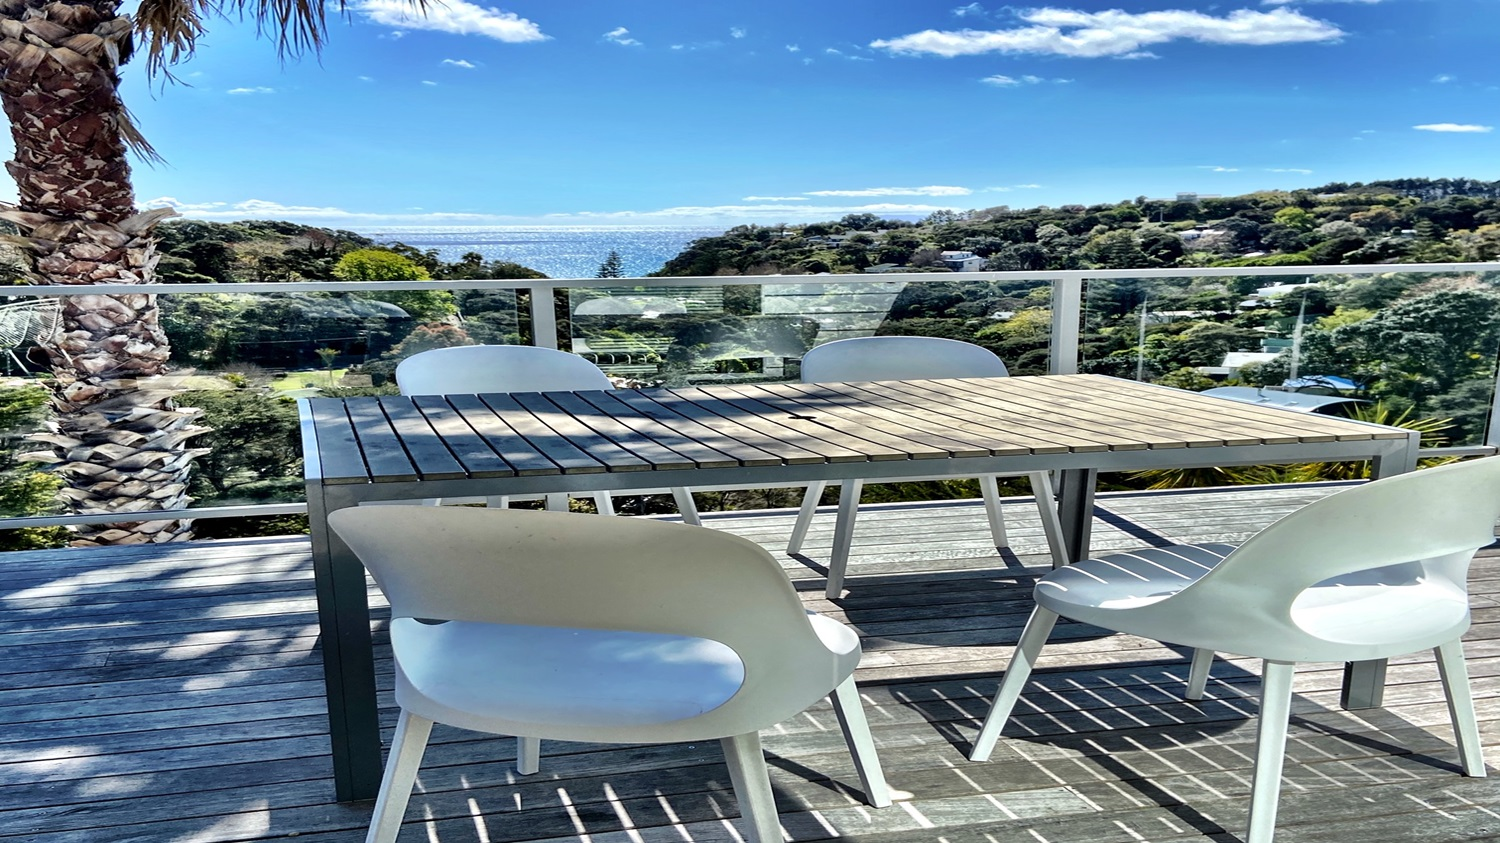 Bayview-Villa-from-the-verandah-with-table-and-chairs.jpg